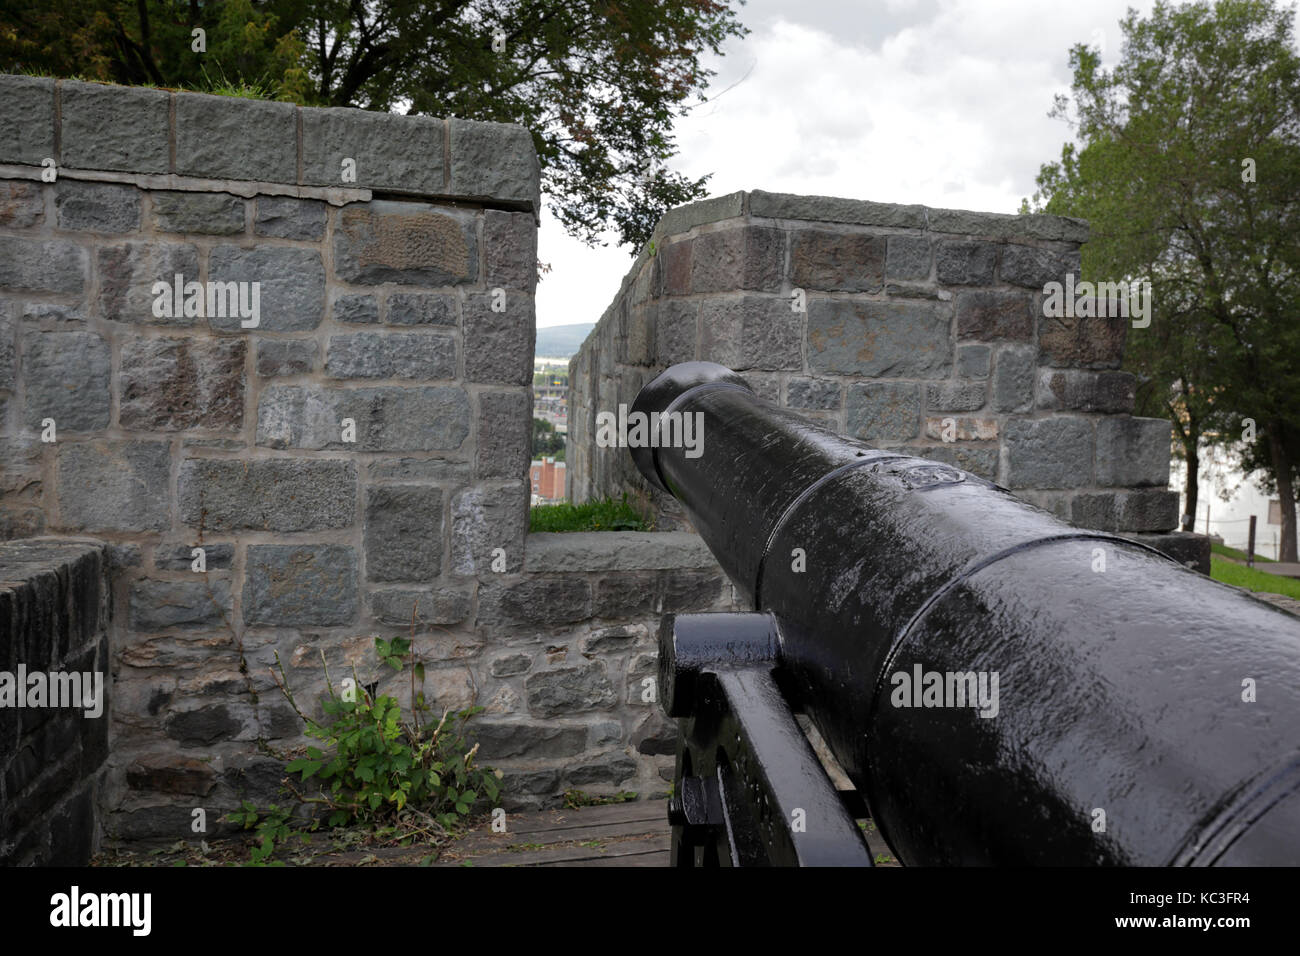 Cannon on Québec City fortified wall - Stock Image